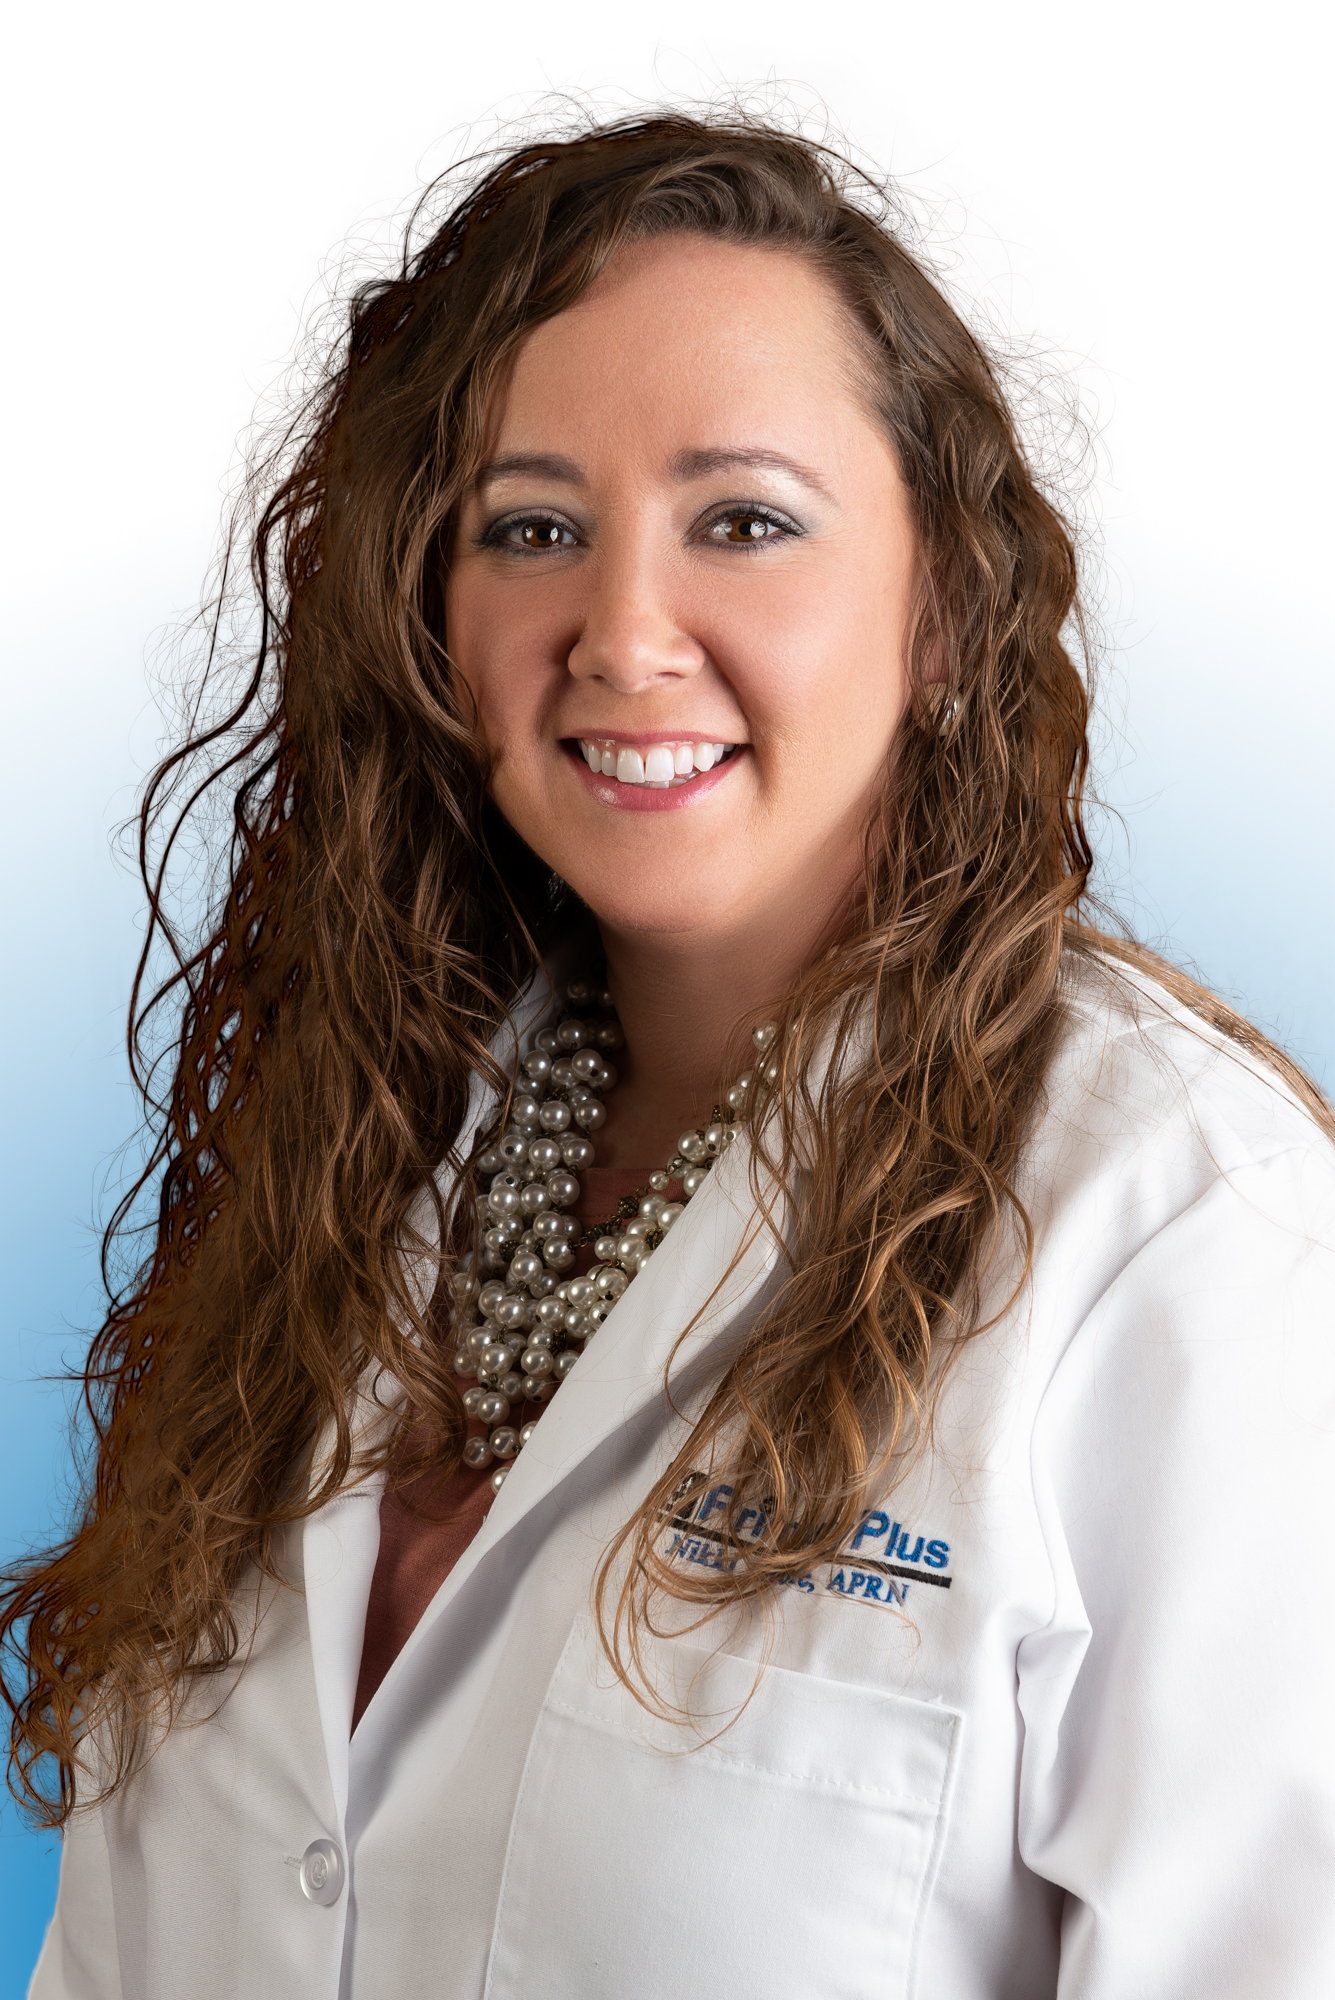 Welcoming Nikki Moore, APRN to PrimaryPlus-Vanceburg News